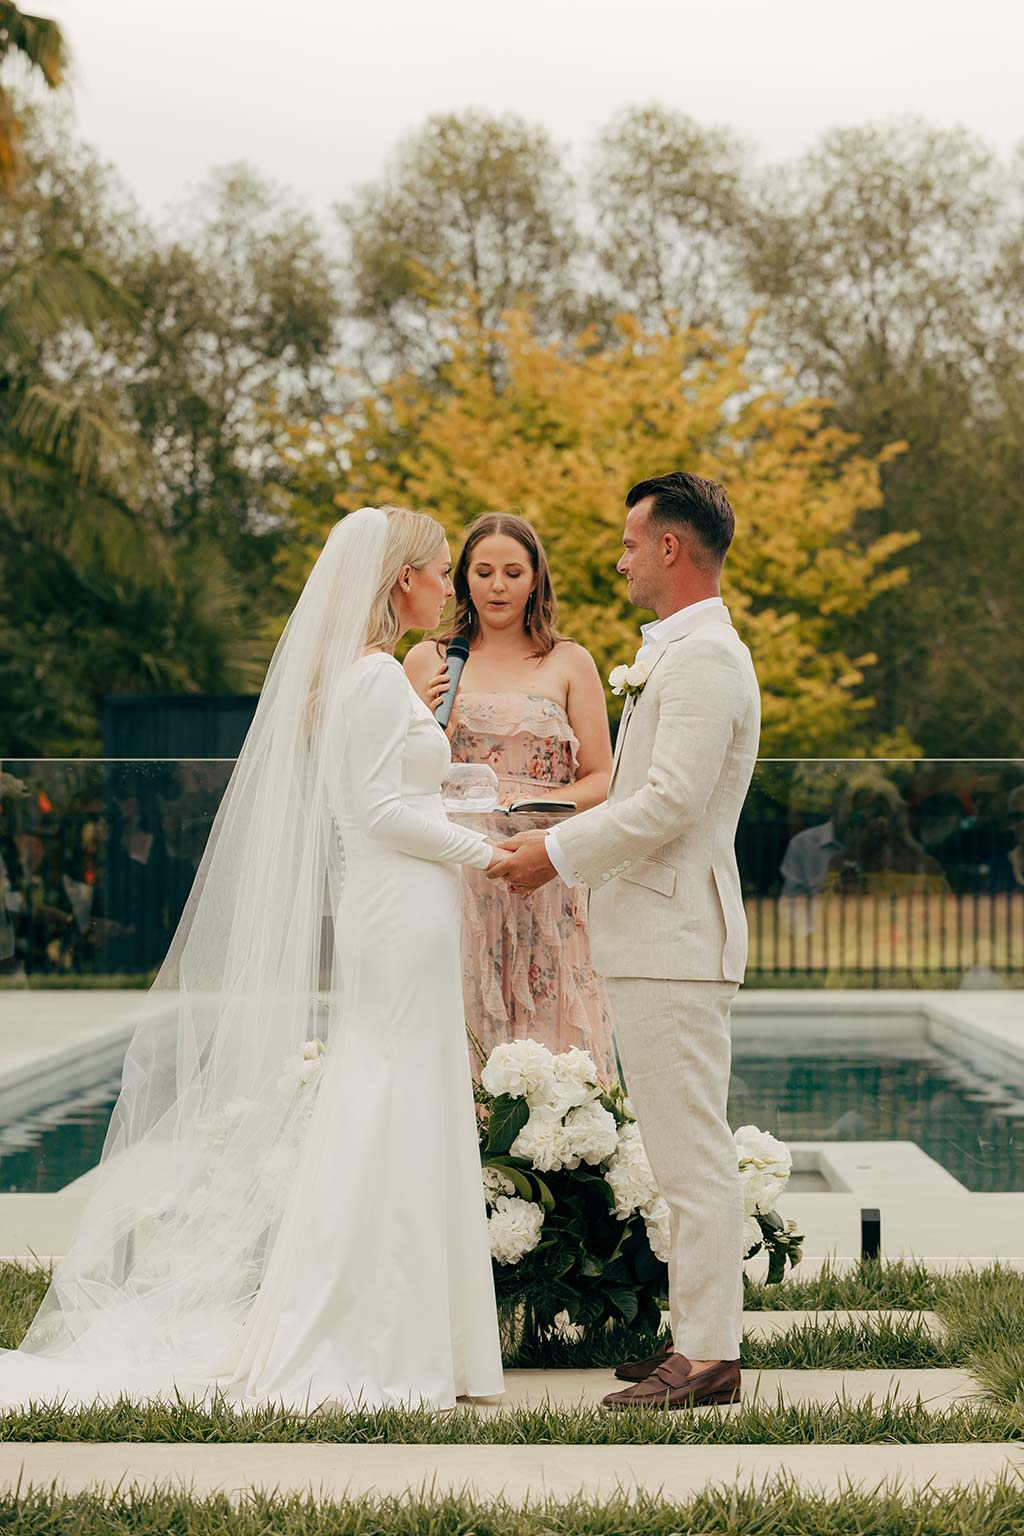 Vinka Design Bridal Wear features Real Wedding Matt and Emilia - bride and groom face to face in ceremony, bride wearing Audrey gown from Modern Muse Collection with long veil